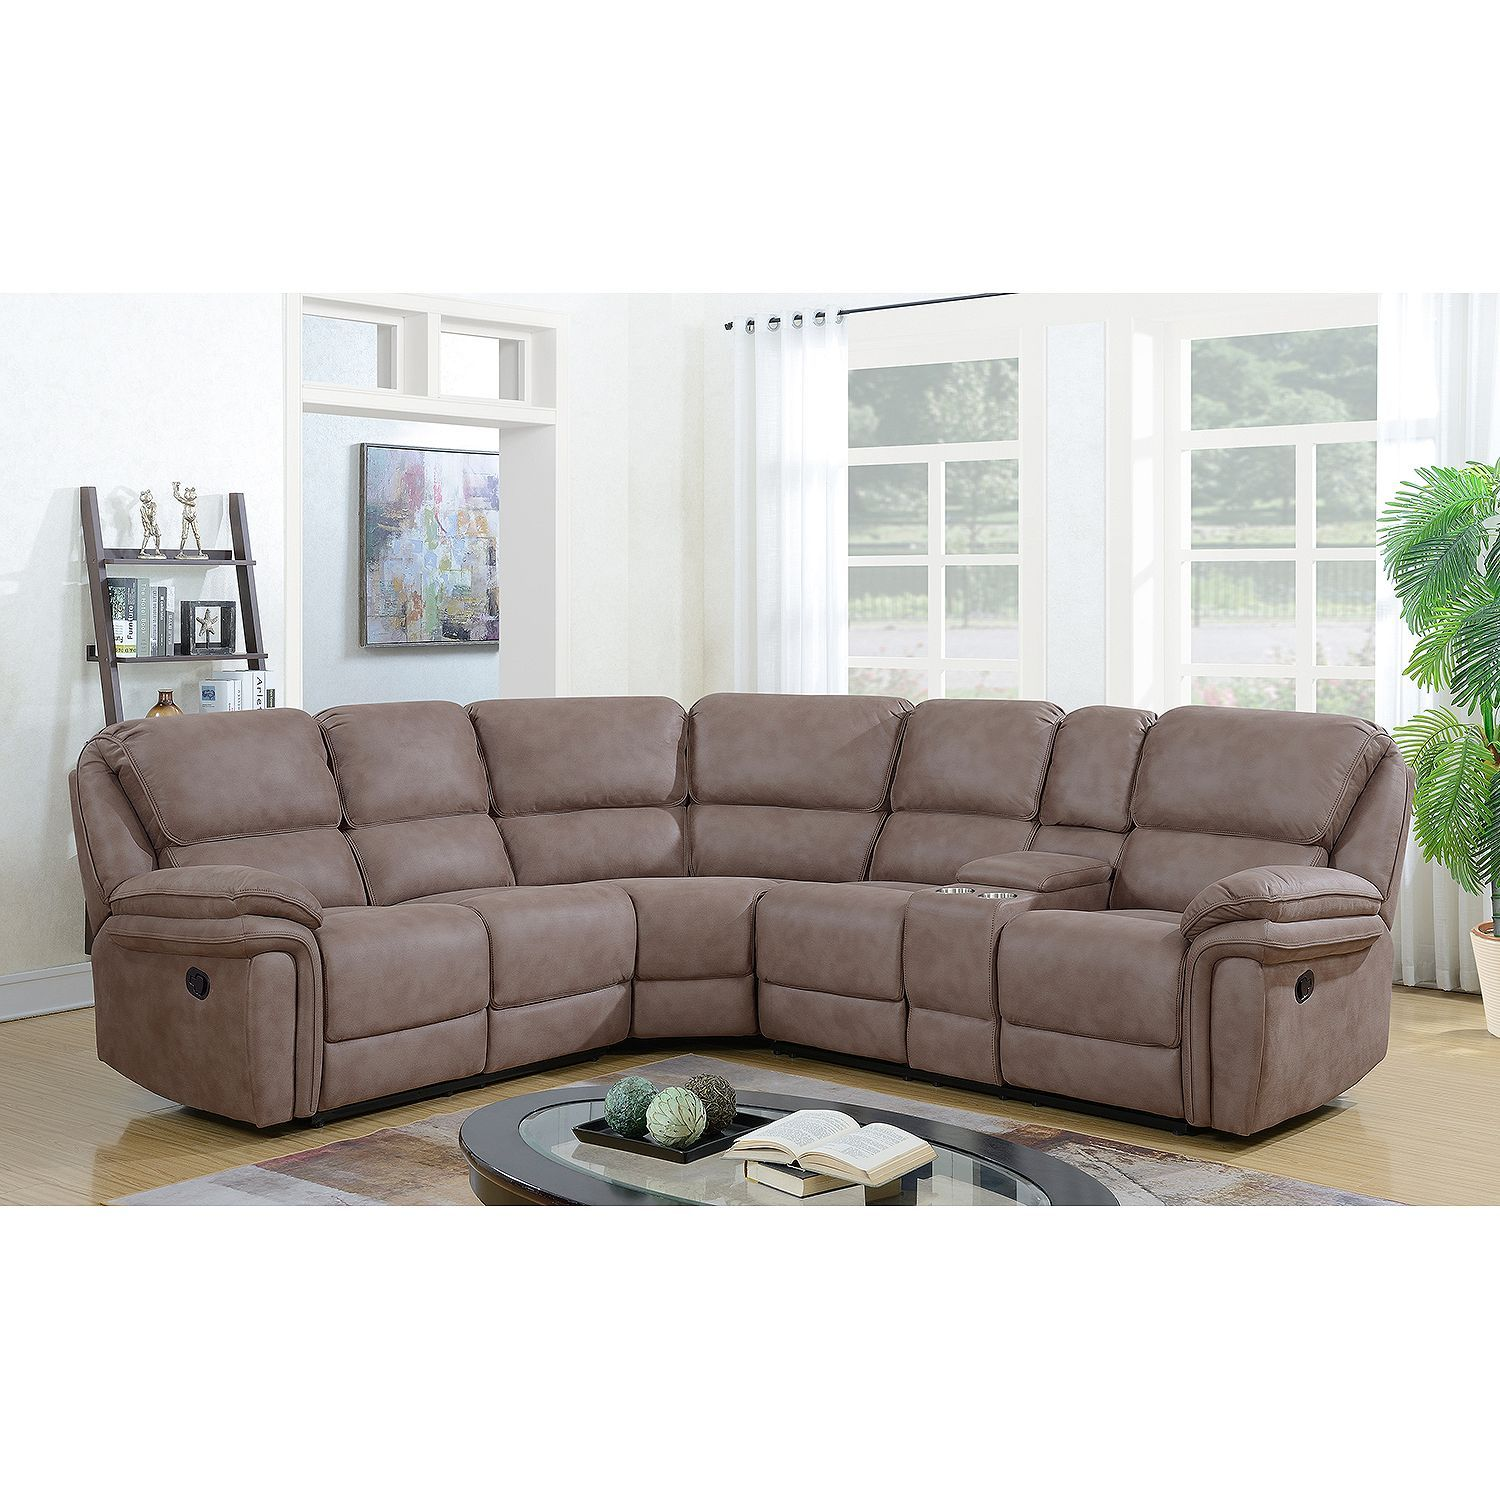 Langston Complete 3-Piece Reclining Sectional - Sam\'s Club ...